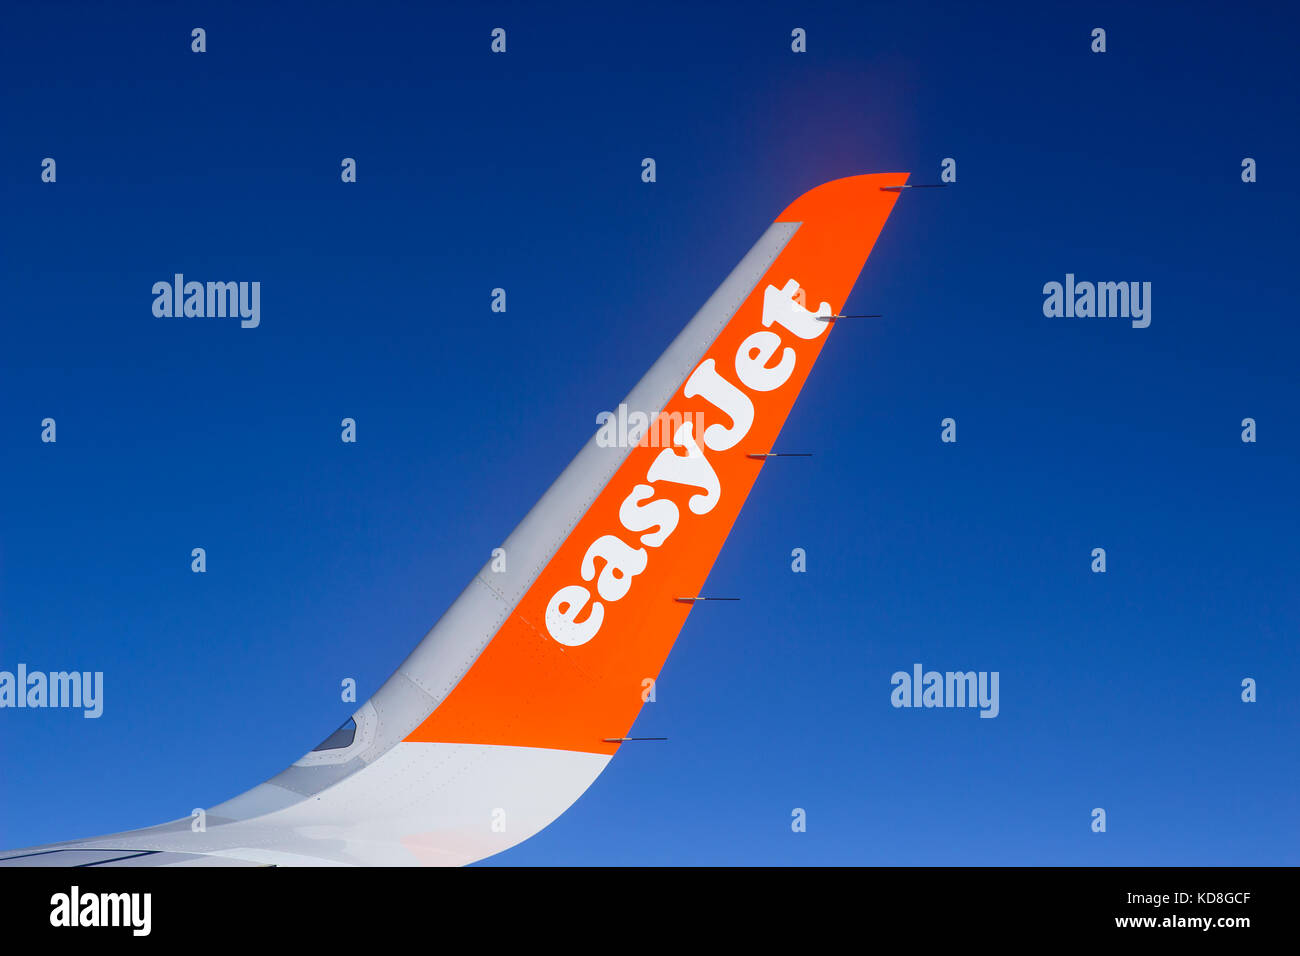 The wing and winglets of an Airbus A320 commercial airliner with a company logo while in flight - Stock Image